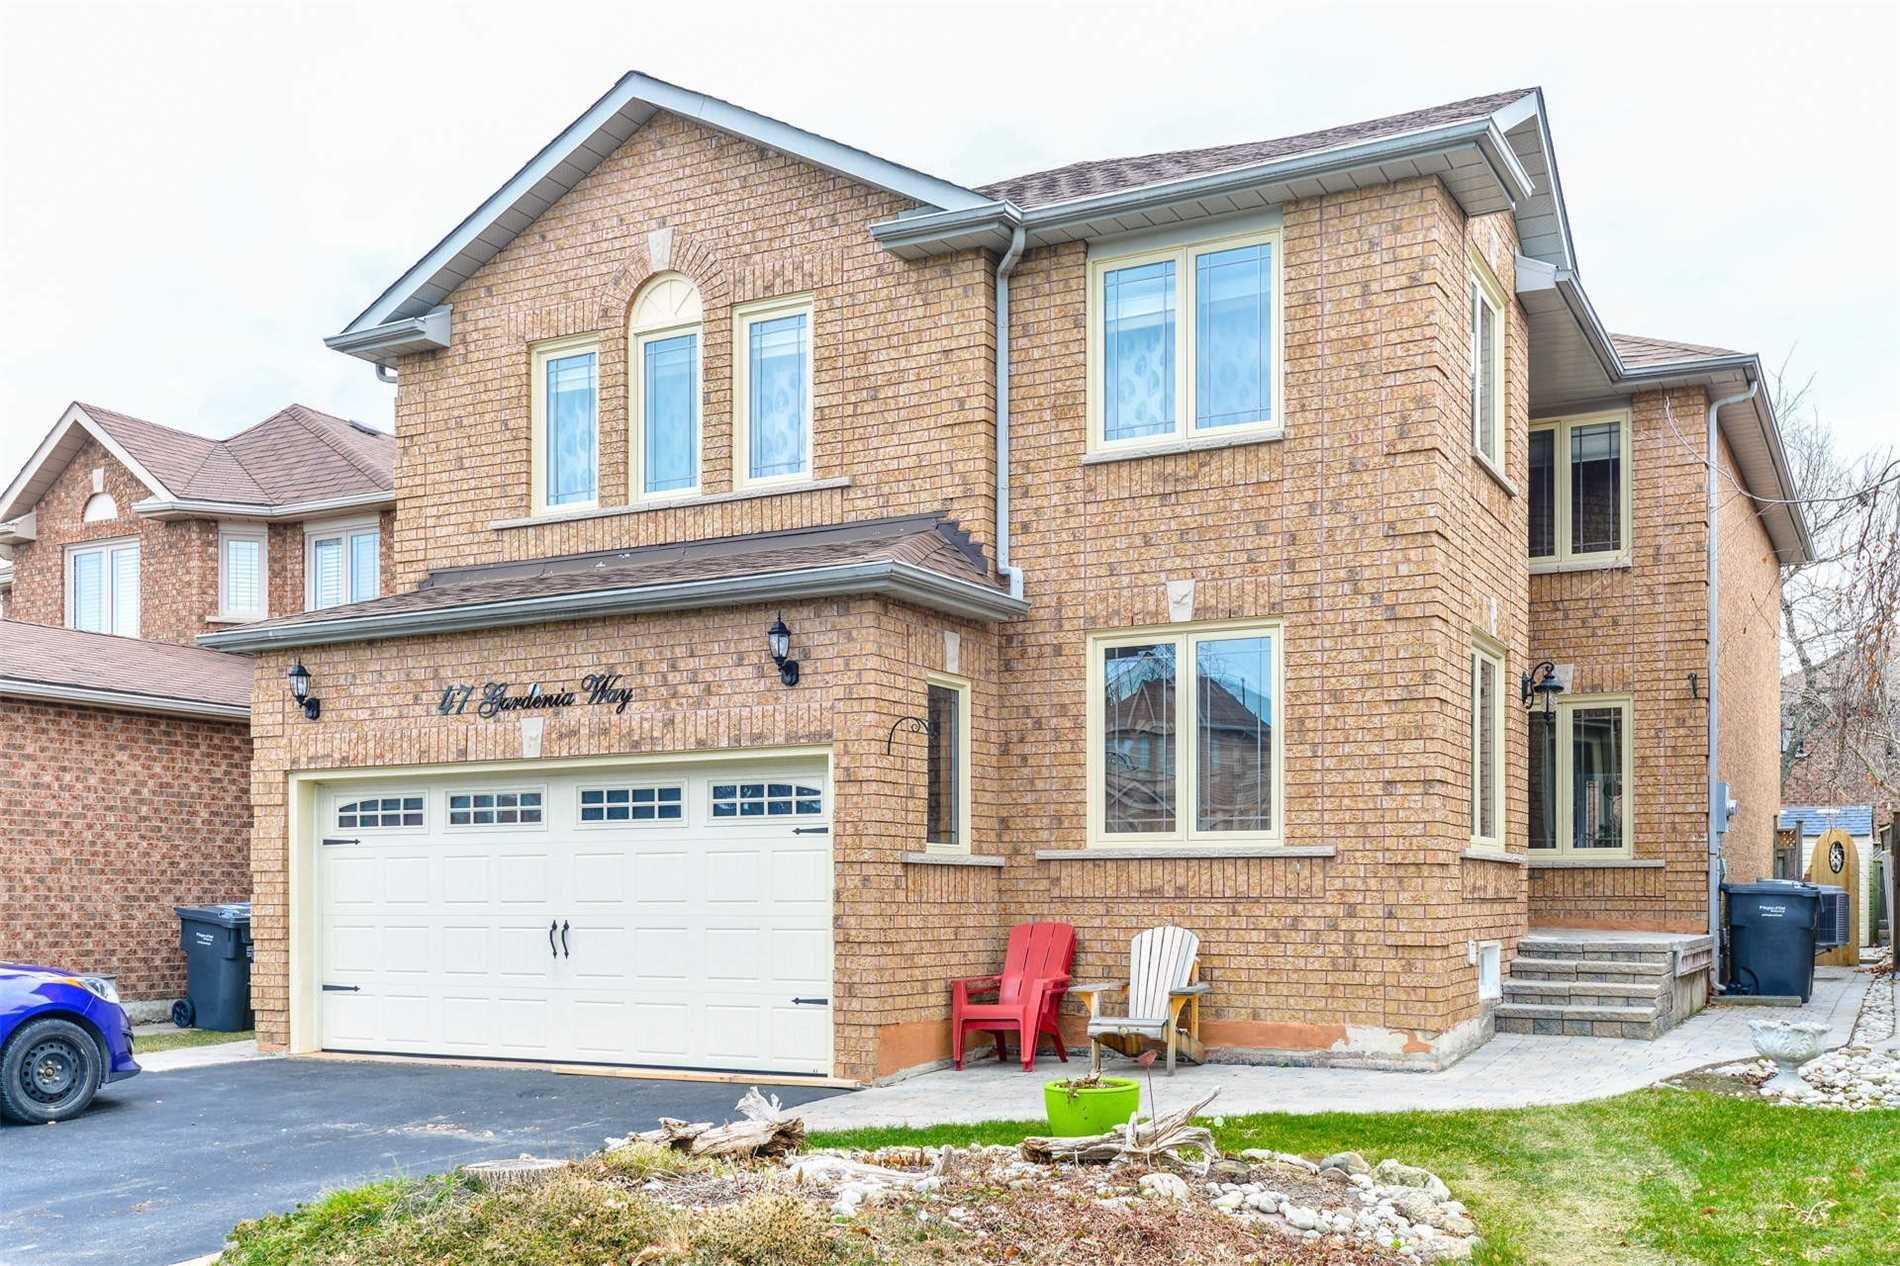 House for sale at 47 Gardenia Way Caledon Ontario - MLS: W4327557